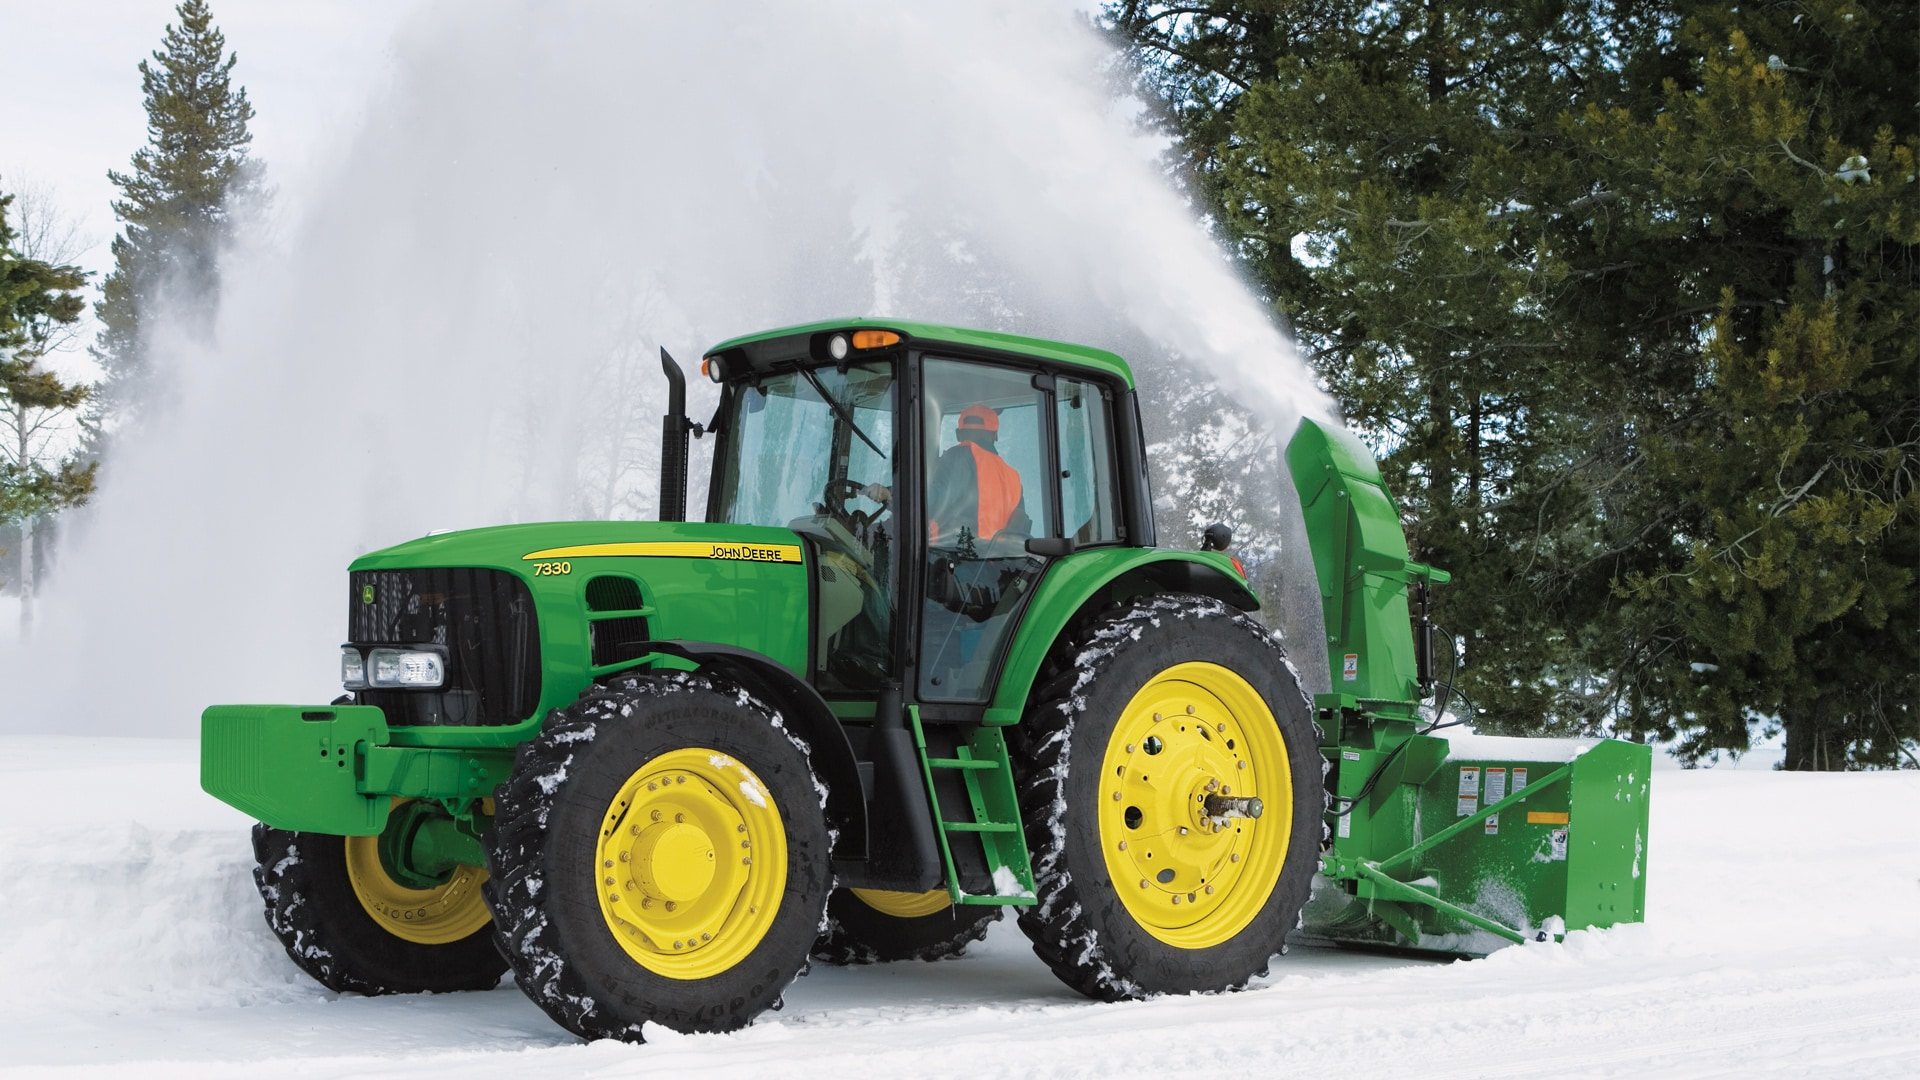 tractor with snow removal attachment in snow